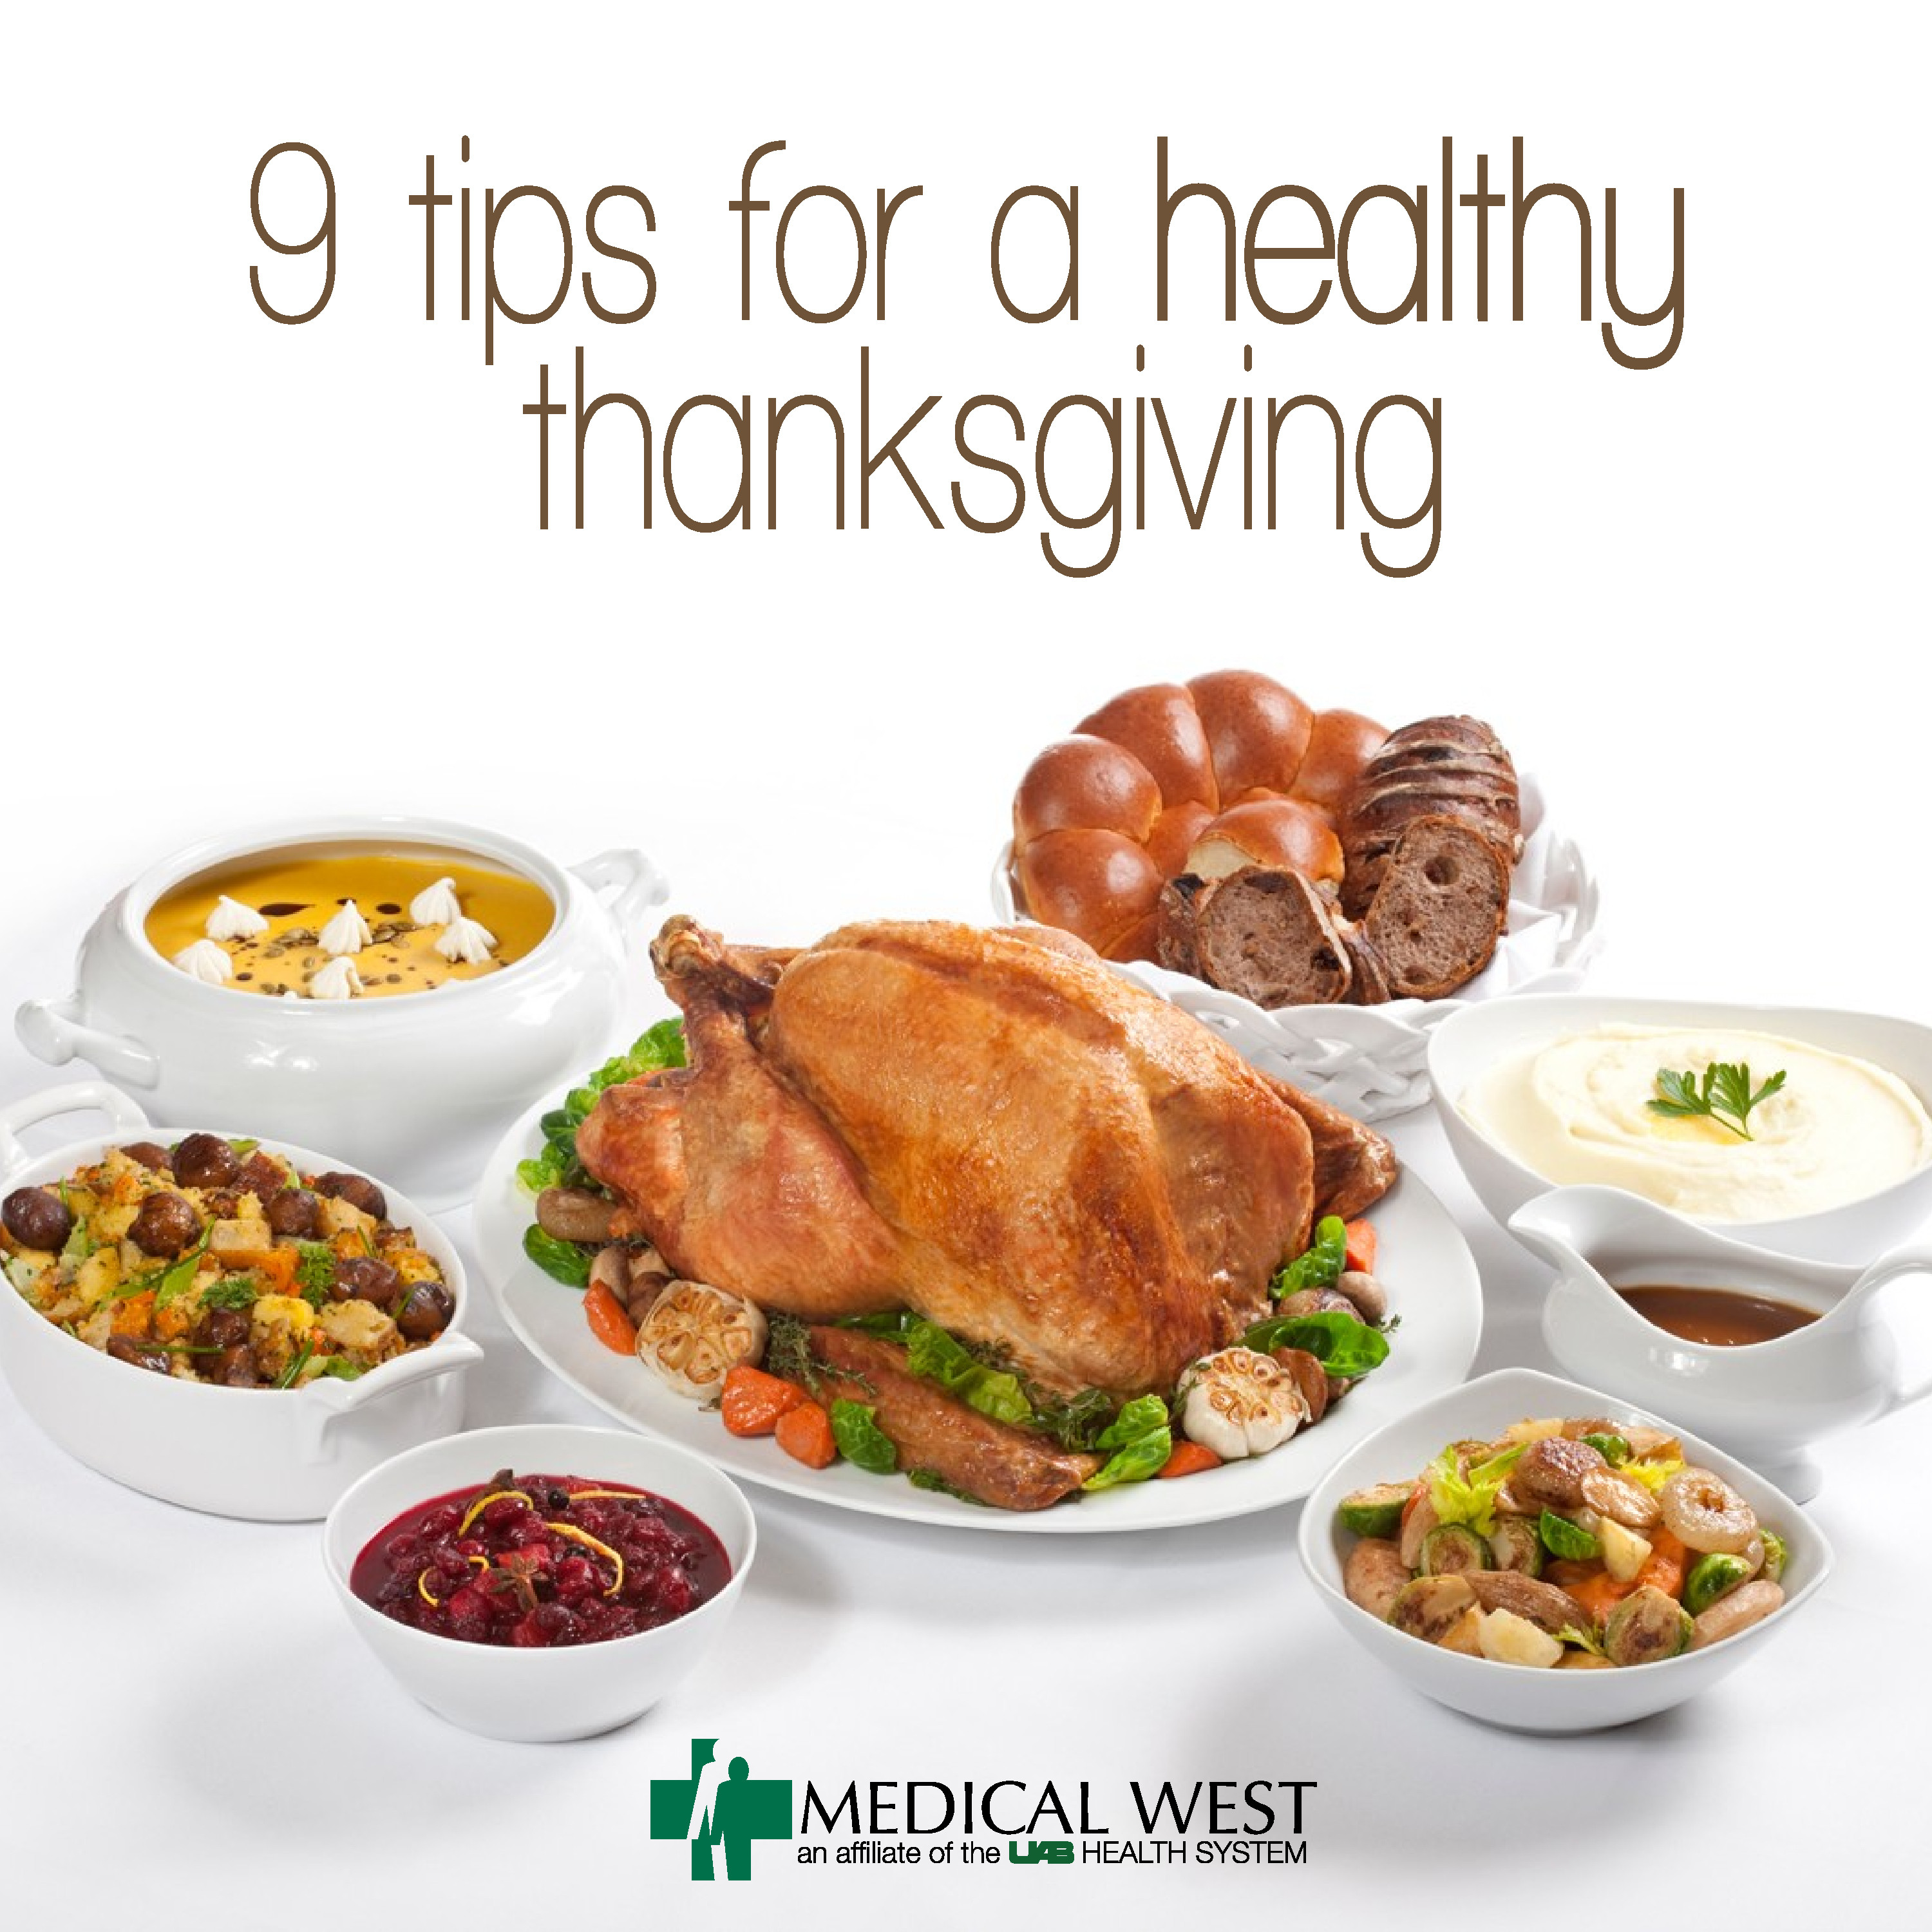 Healthy Thanksgiving Tips  9 Tips for a Healthy Thanksgiving